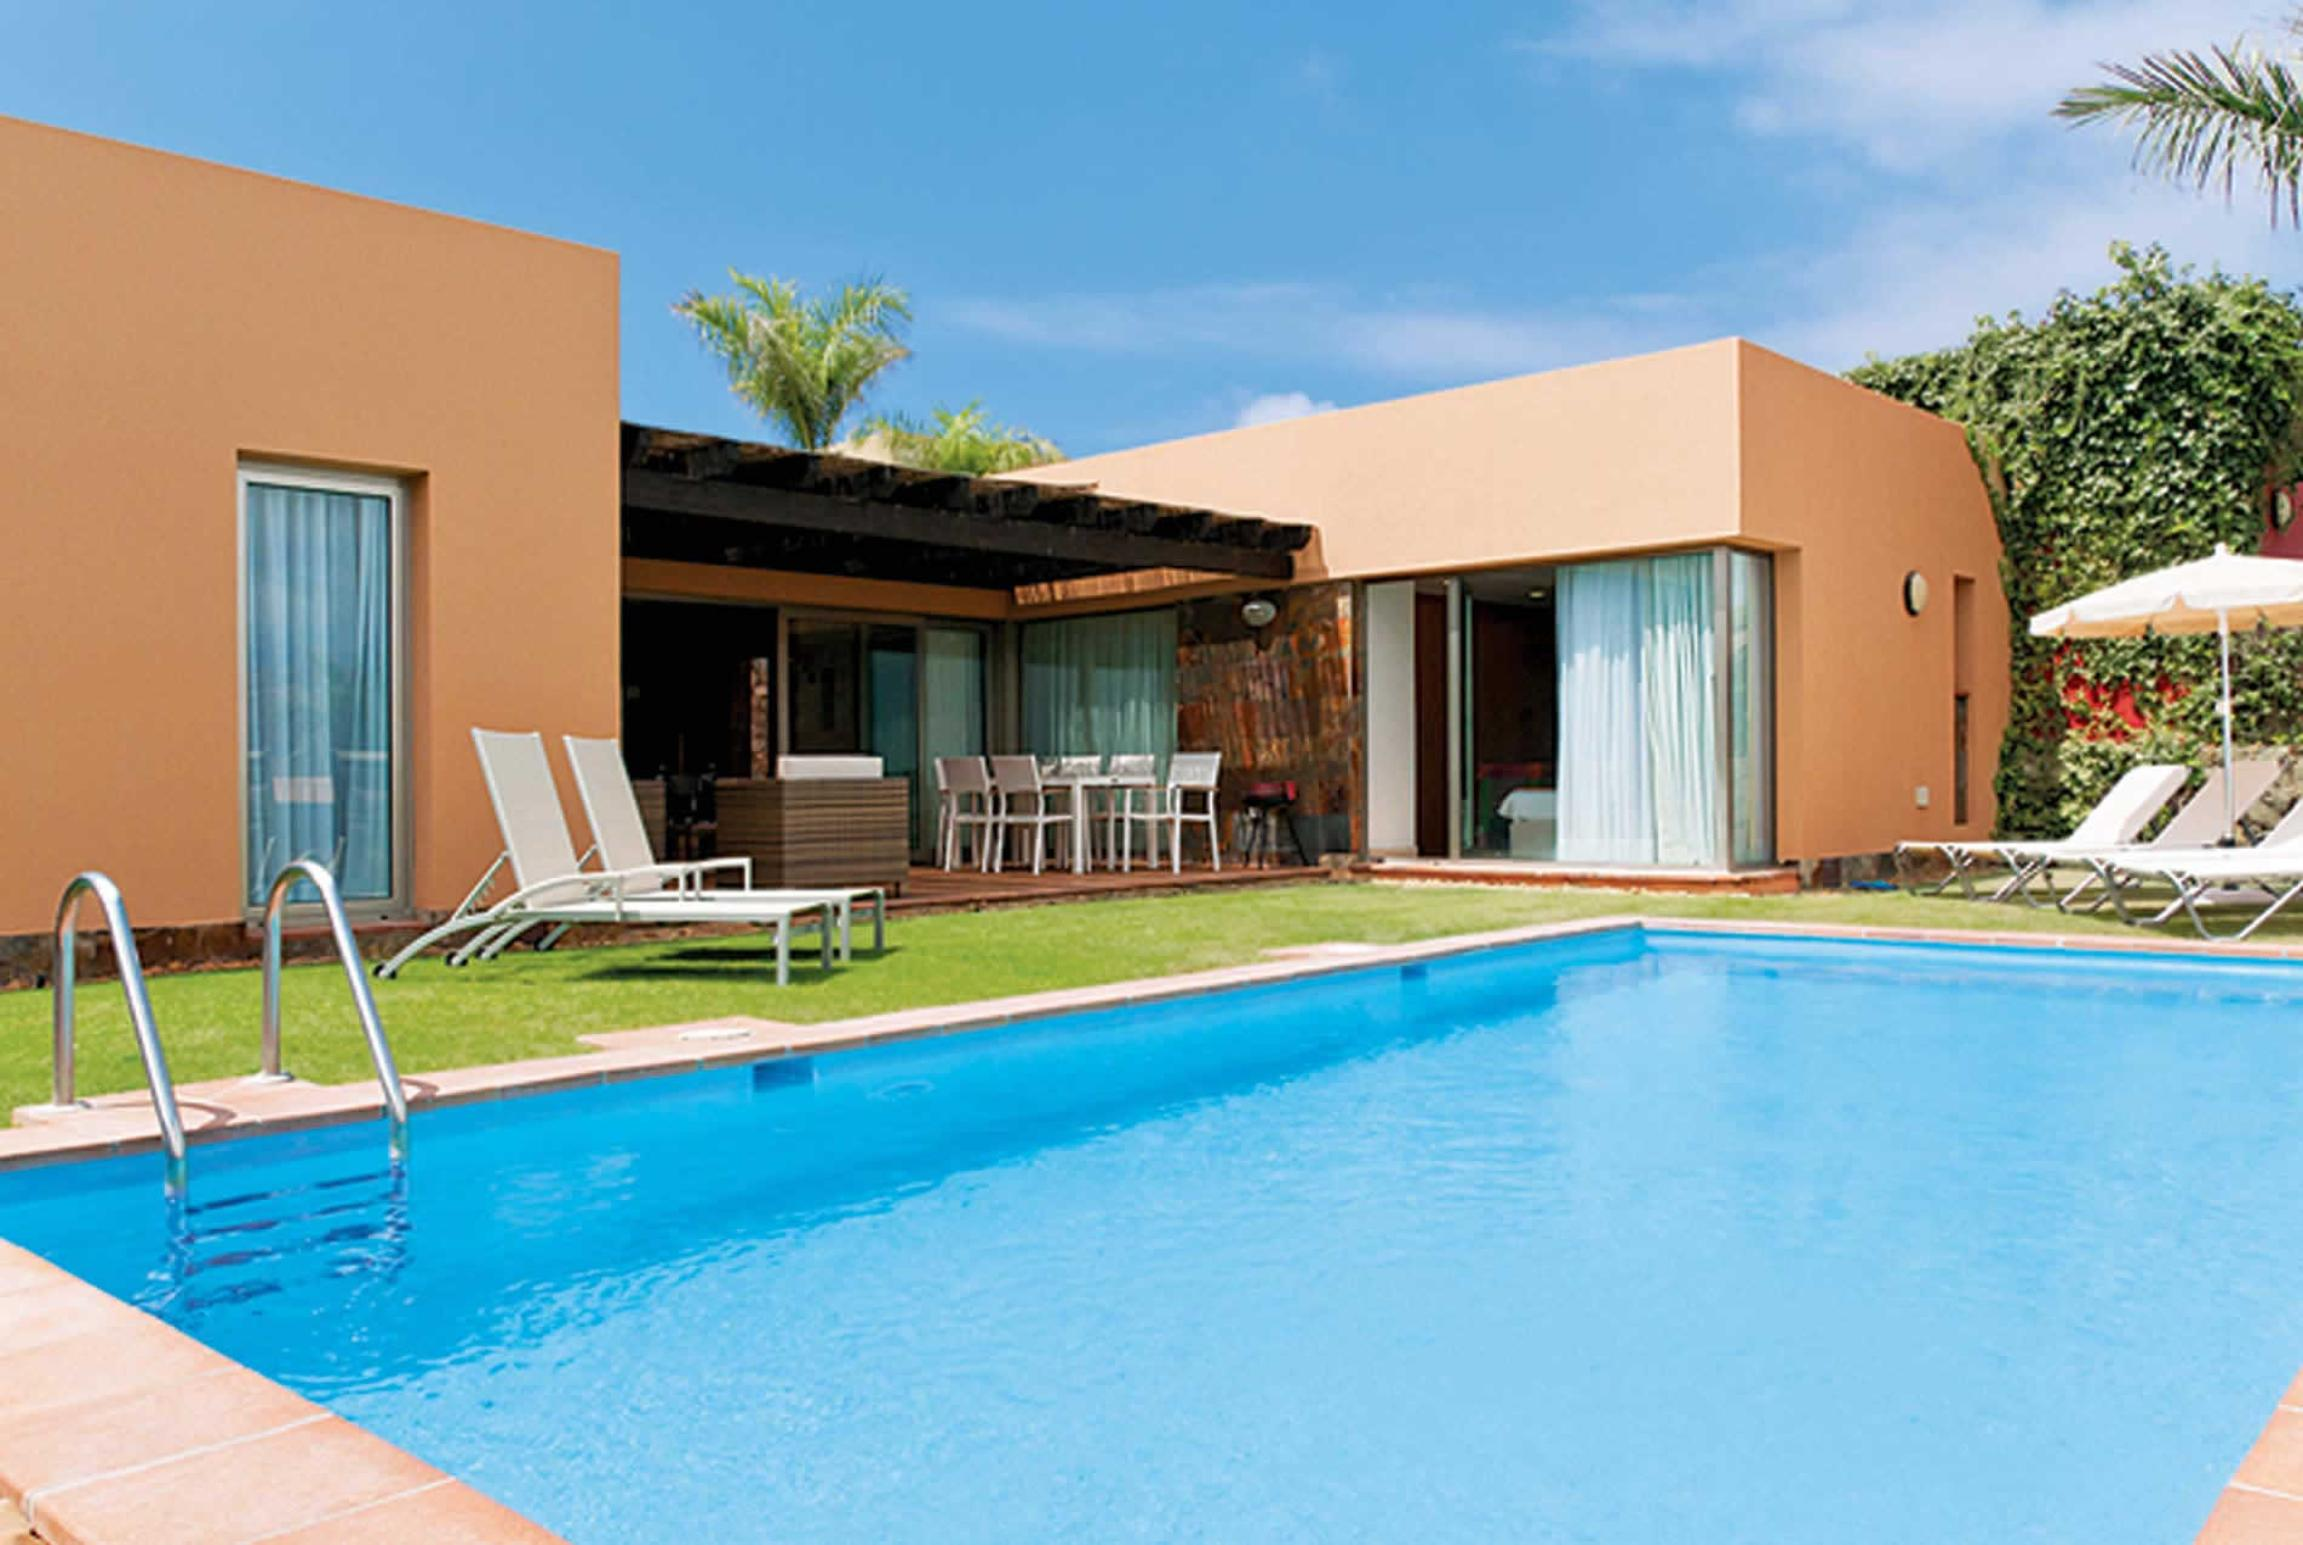 Read more about Par 4 Villa 7 villa